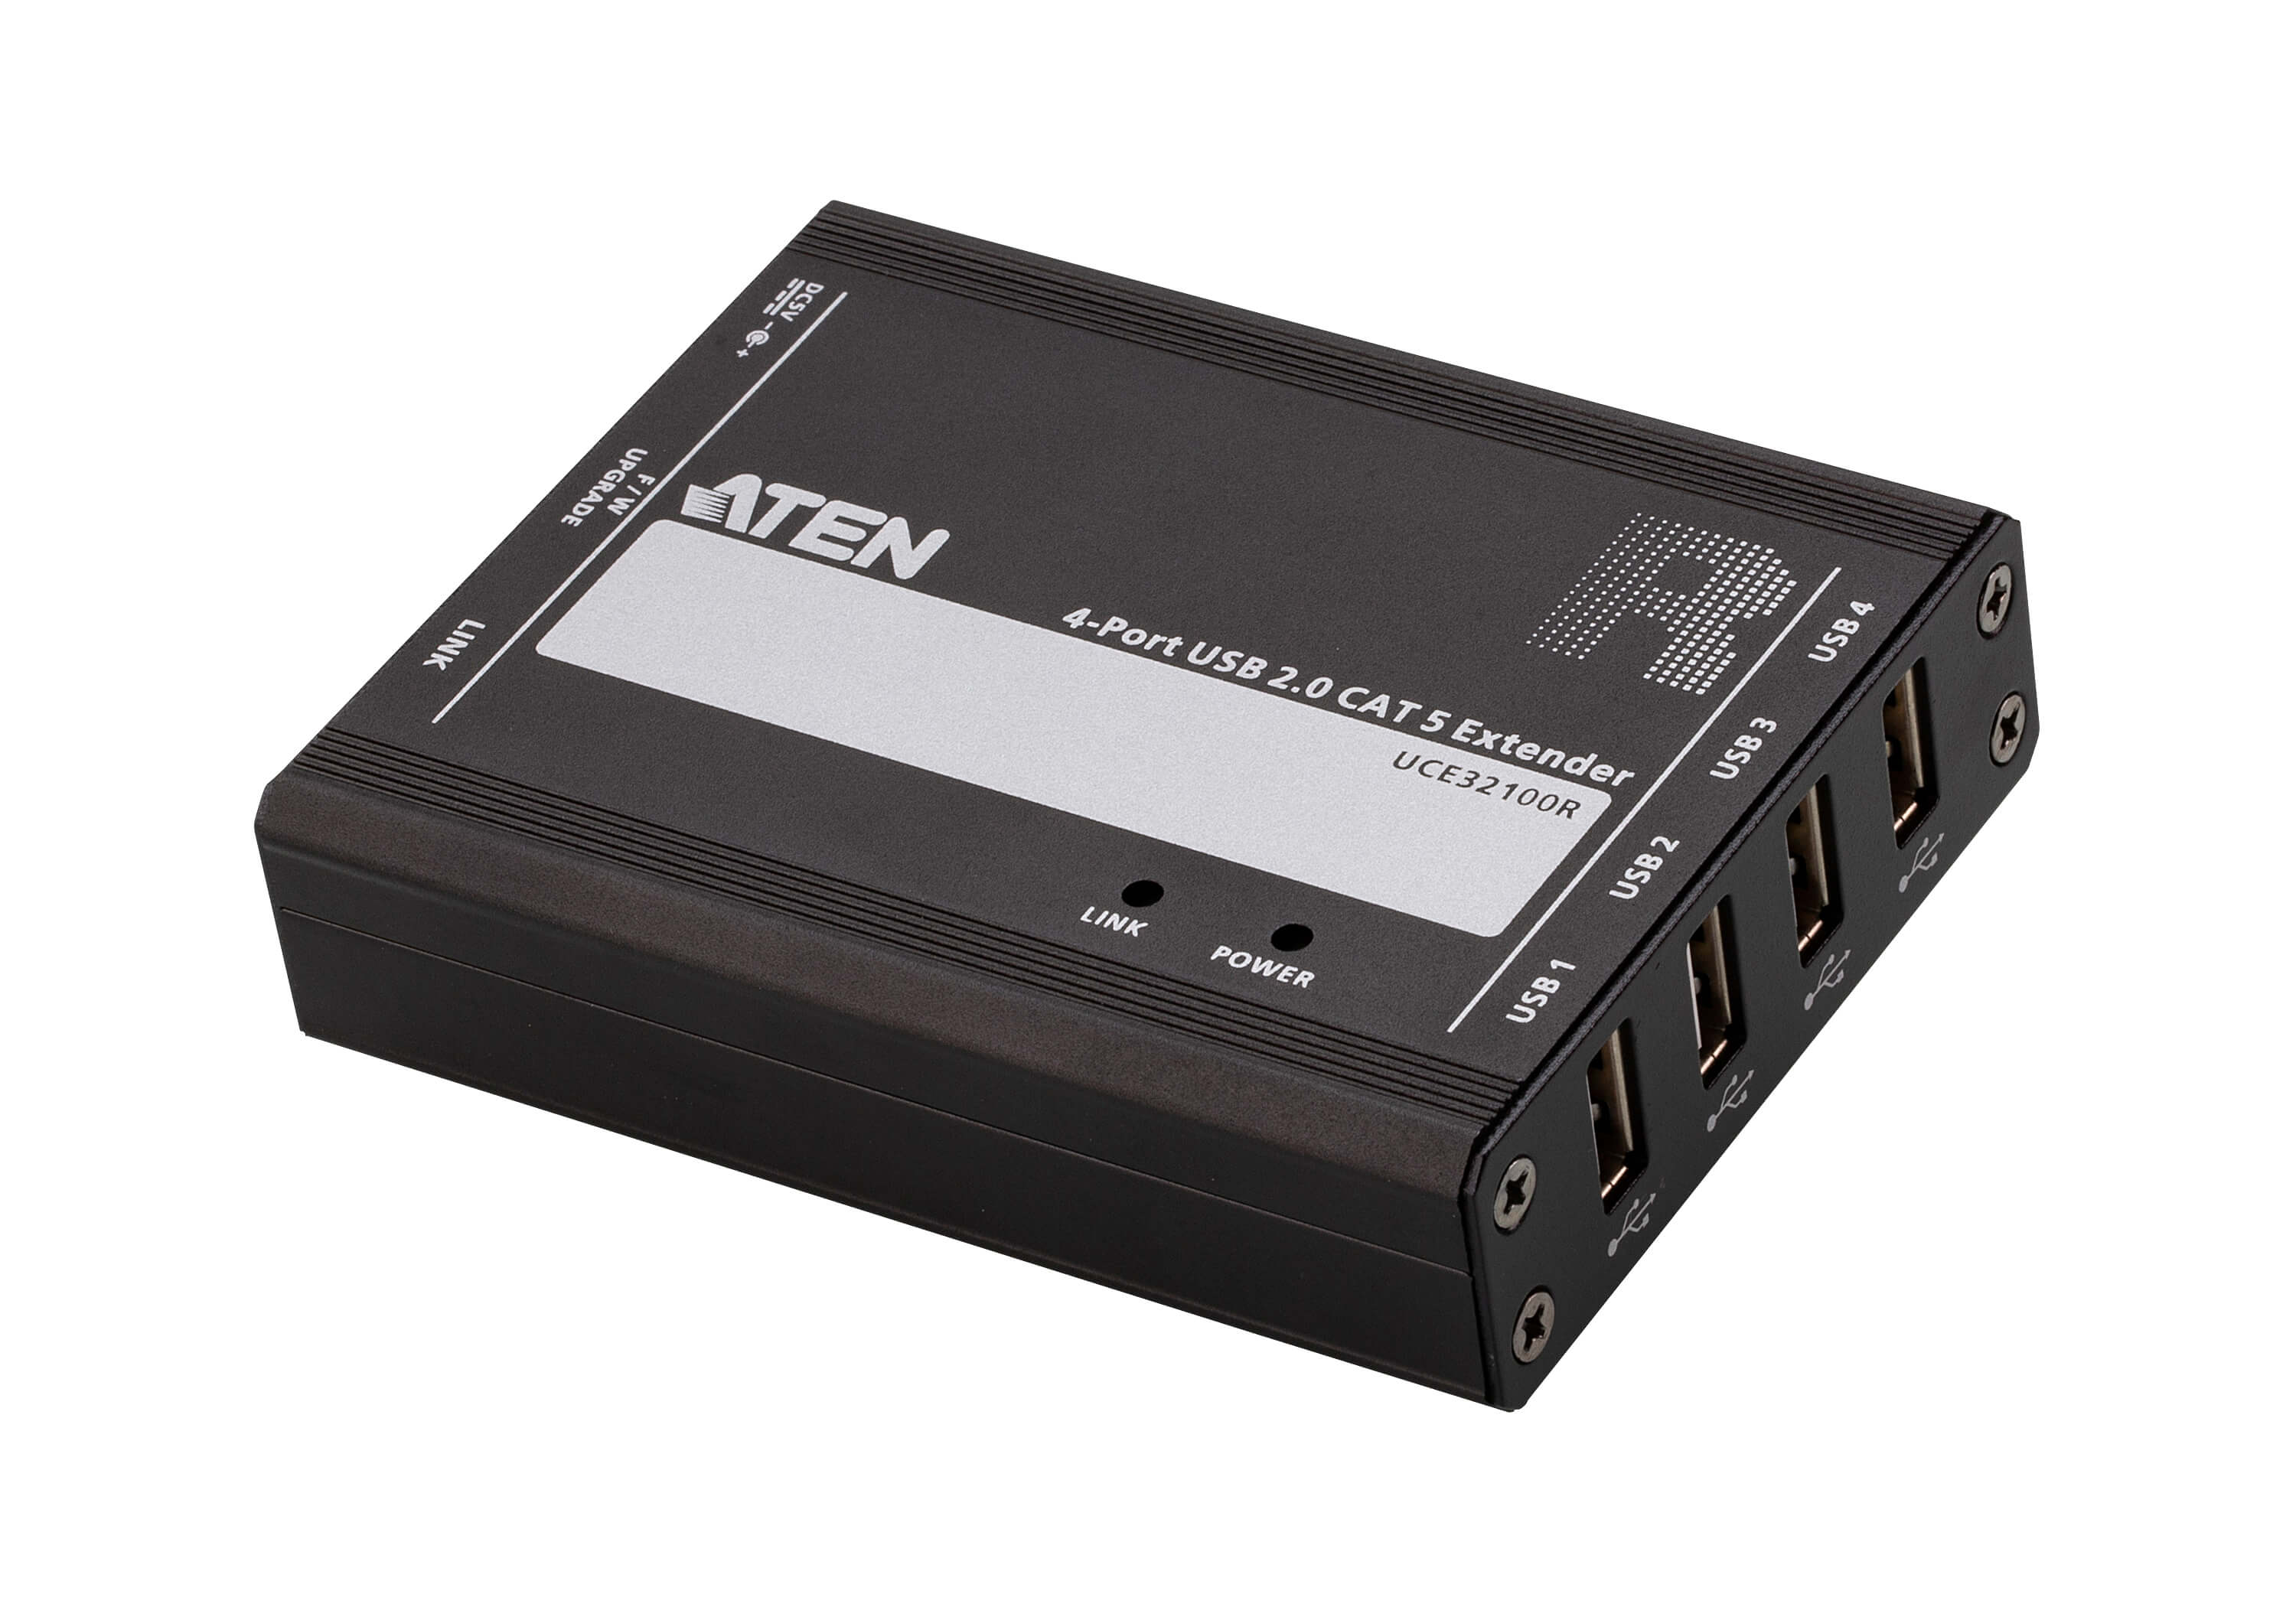 4-port USB 2.0 CAT 5 Extender (100m)